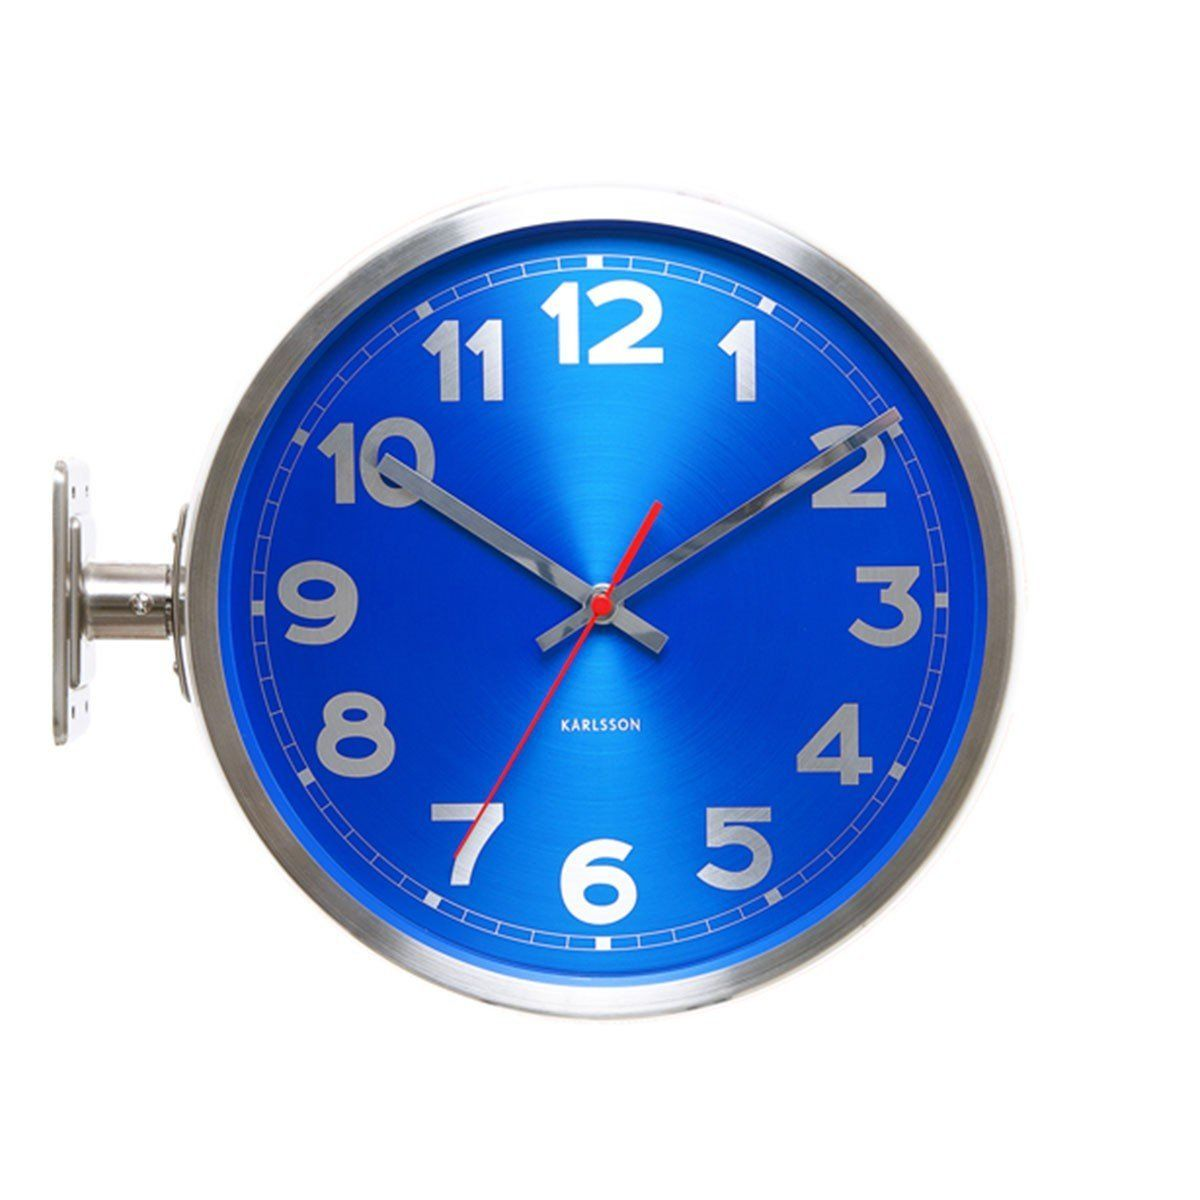 Karlsson double sided stainless steel wall clock blue amazon karlsson double sided stainless steel wall clock blue amazon amipublicfo Images